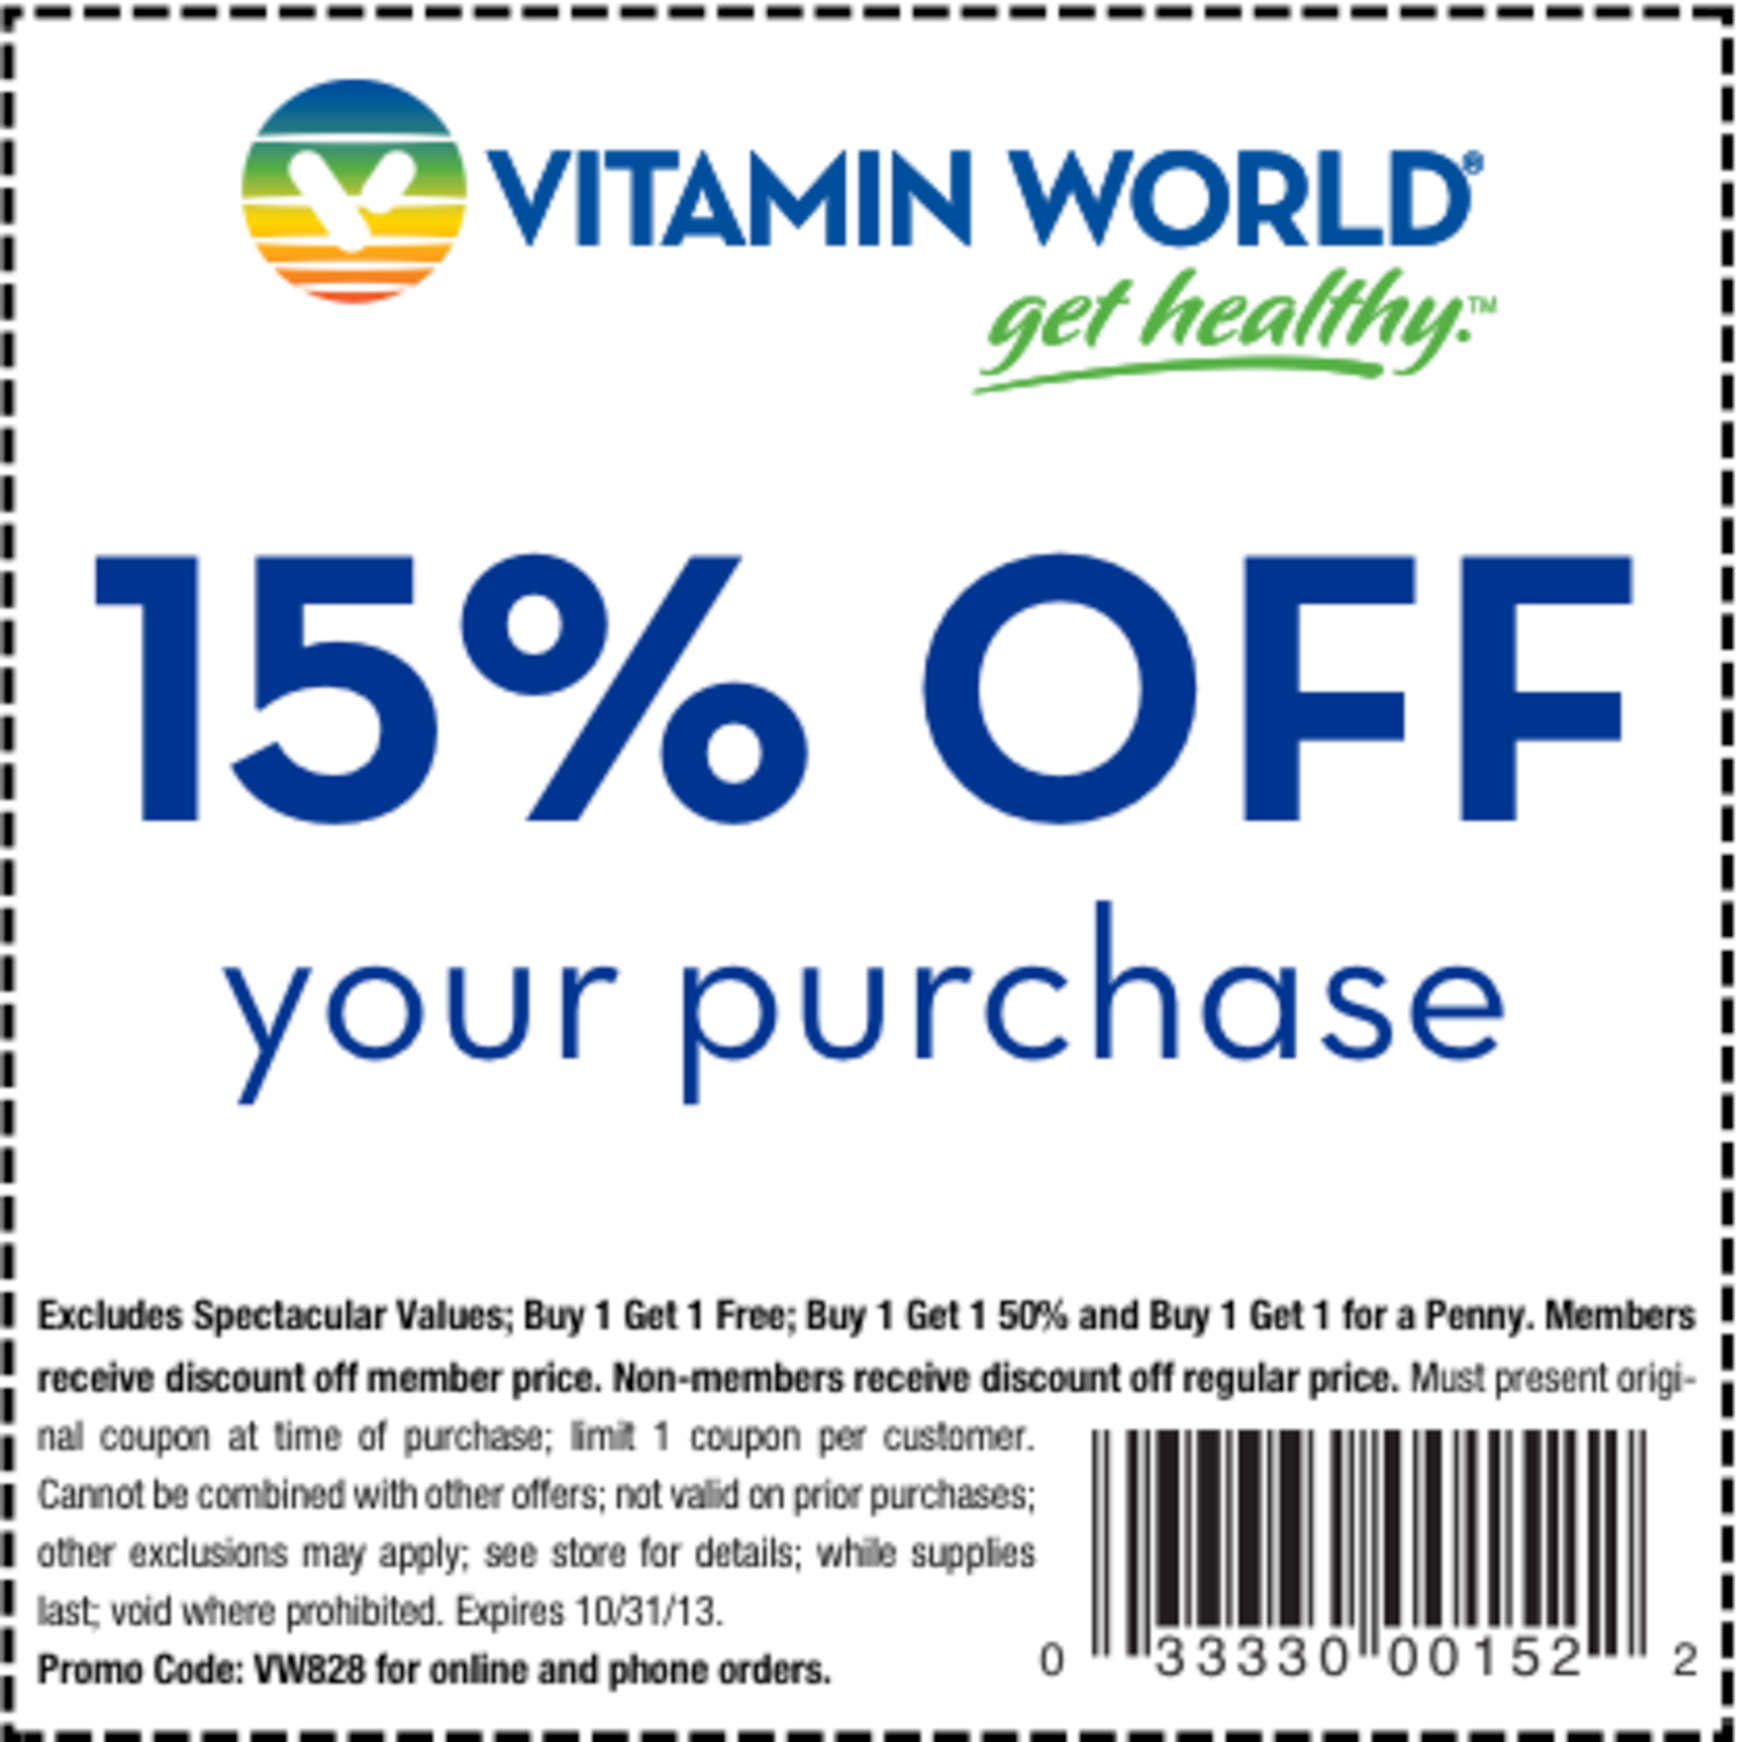 Vitamin a coupon code